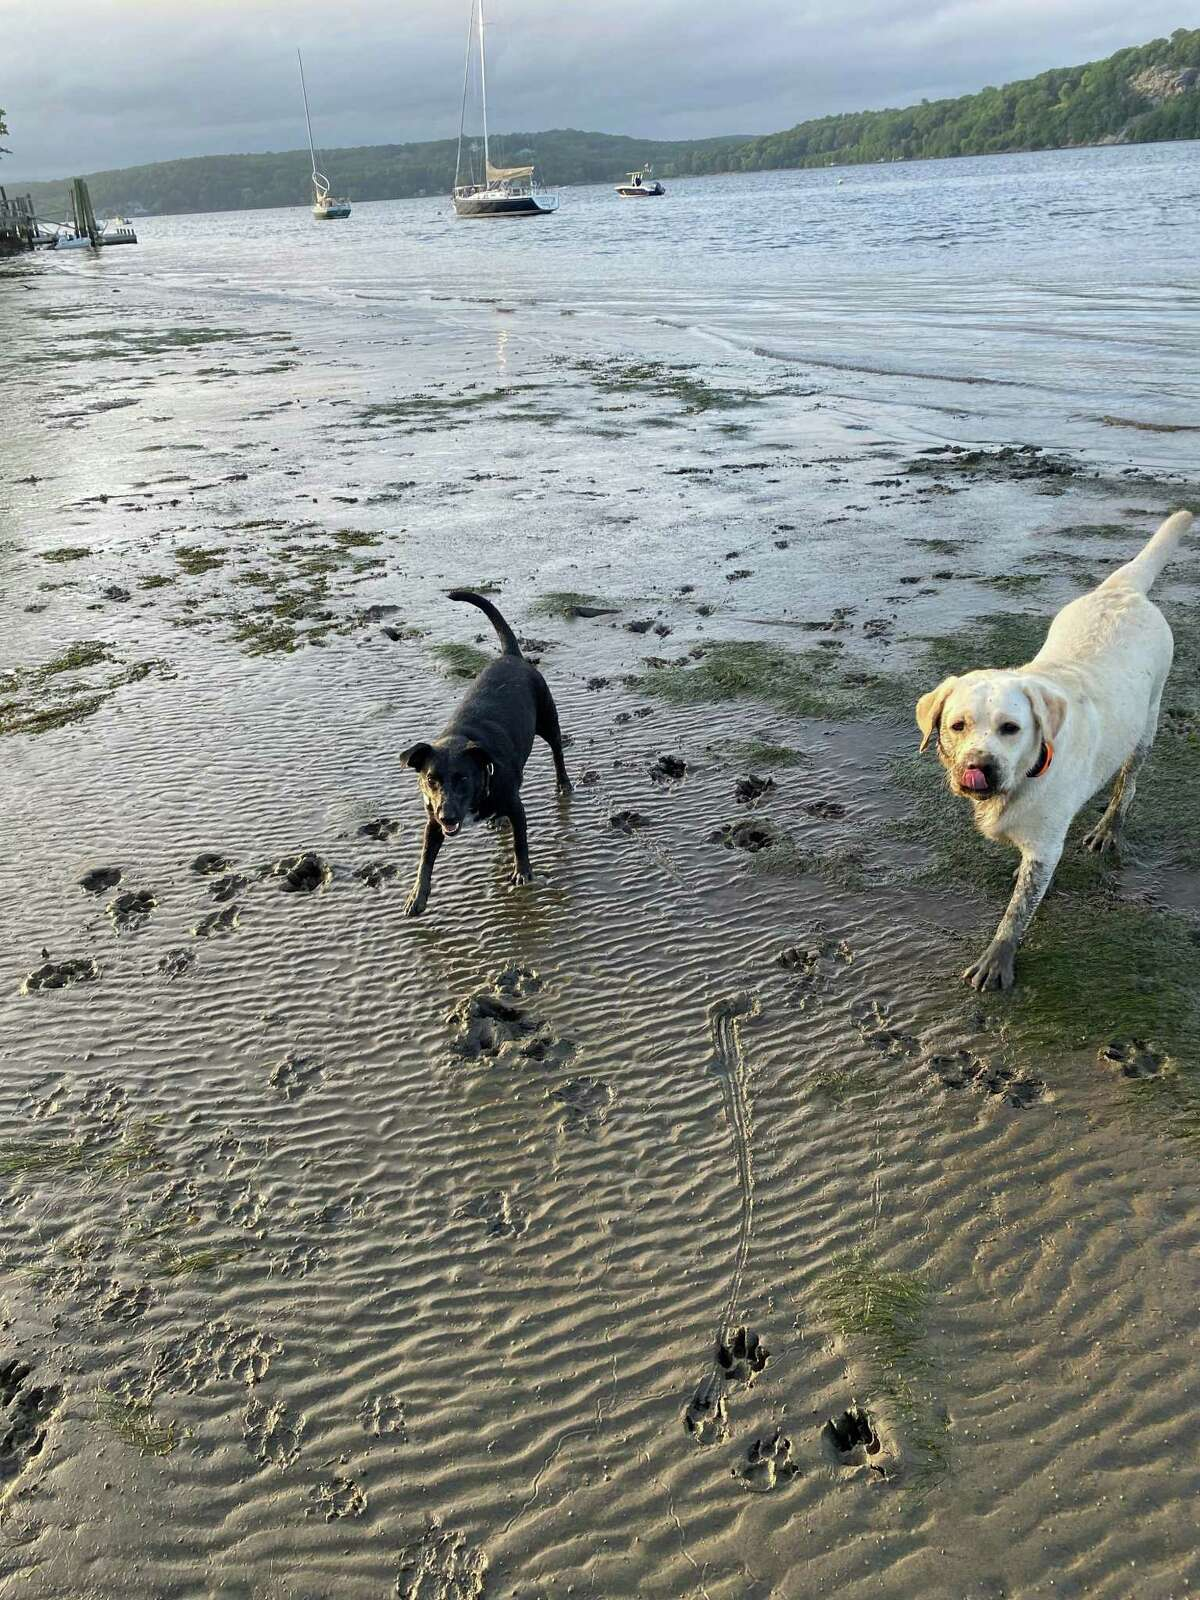 Romping in the mud and staying cool at the edge of the Connecticut River are (l-r) Brie and Cooper.